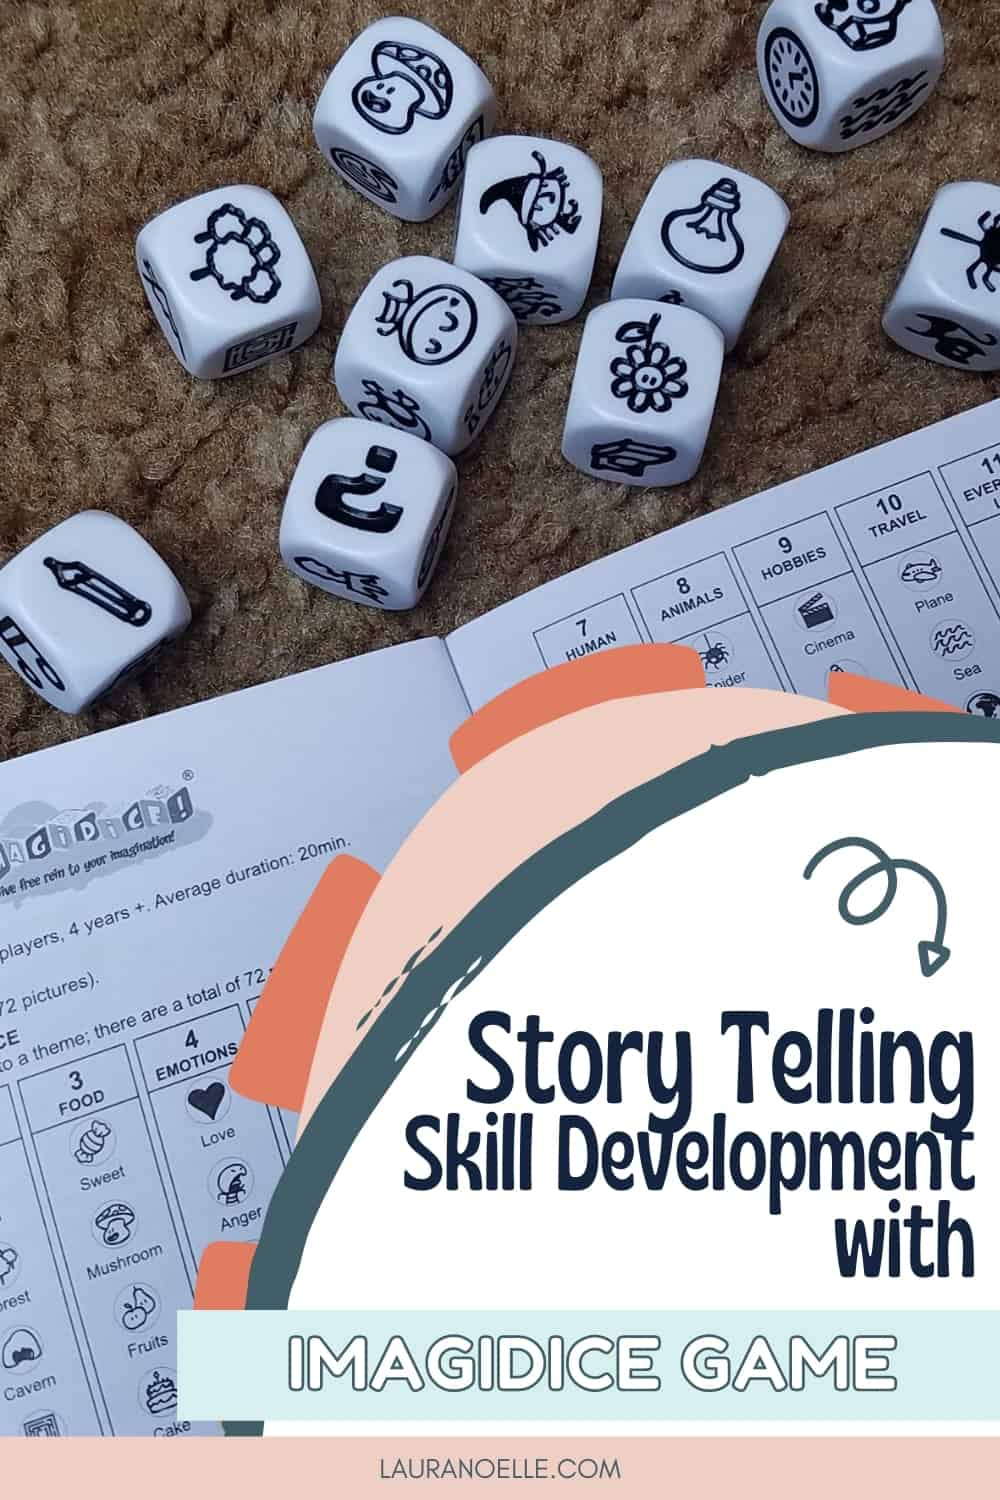 Building a confident writer starts young, before they even put pen to paper, with prewriting and storytelling skills. Now these skills can be built in a fun family game!